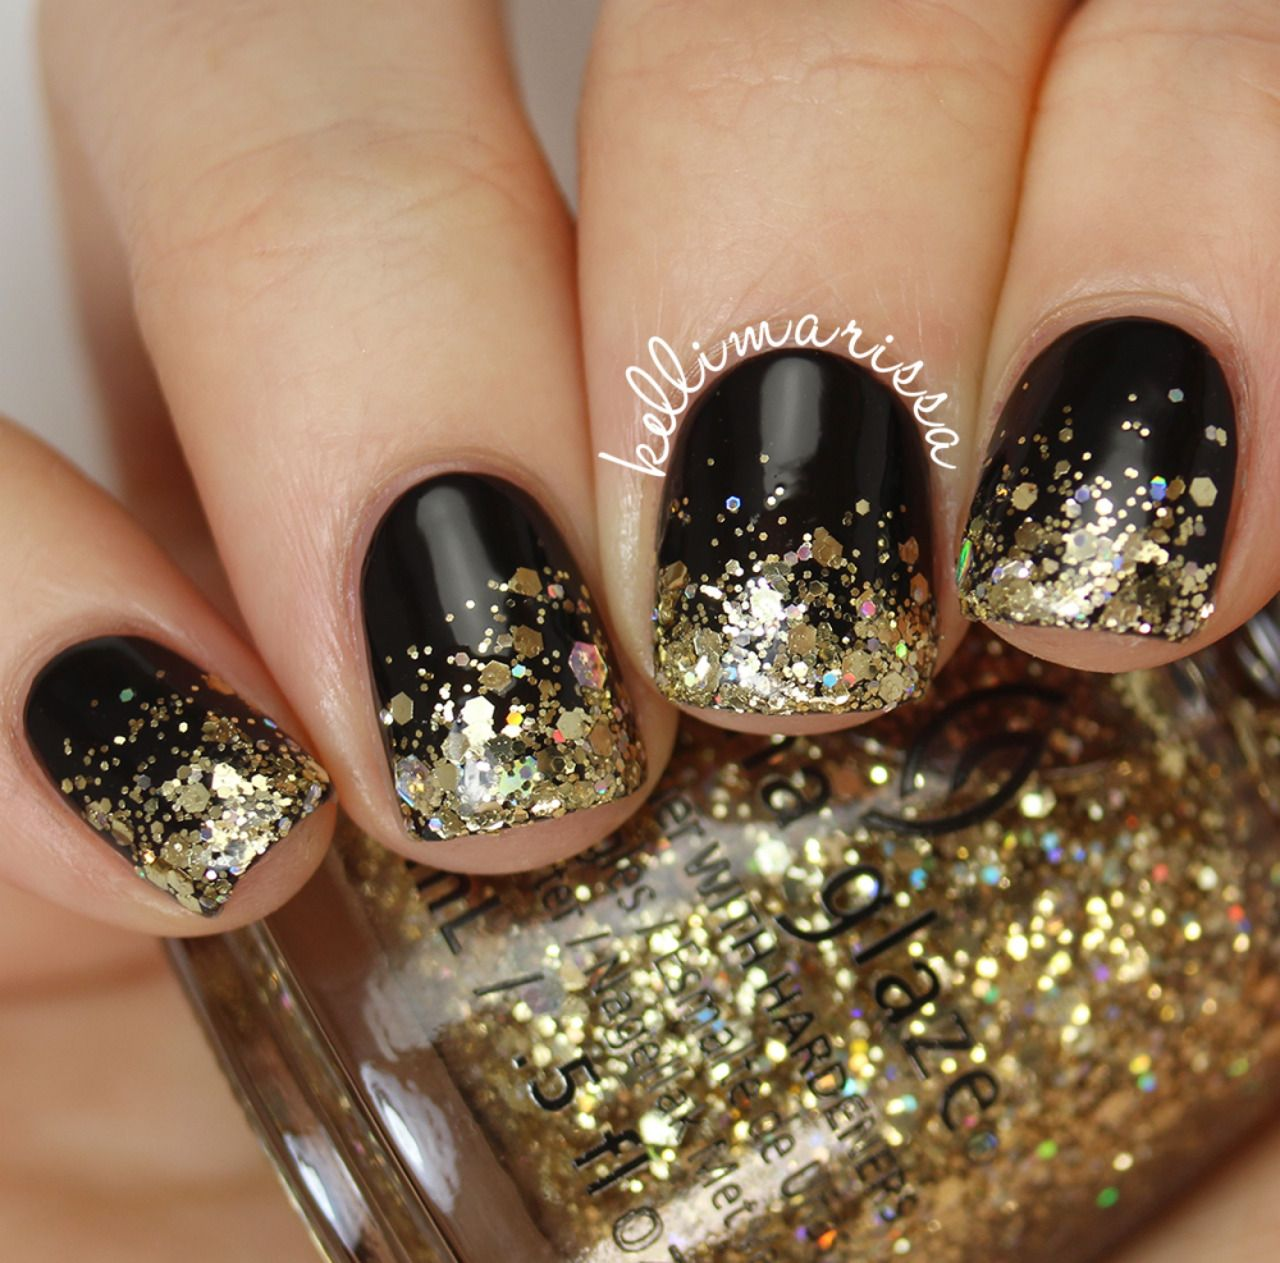 New years eve nails tumblr nail art community pins pinterest glod sequins tipped nail art for short nails prinsesfo Gallery